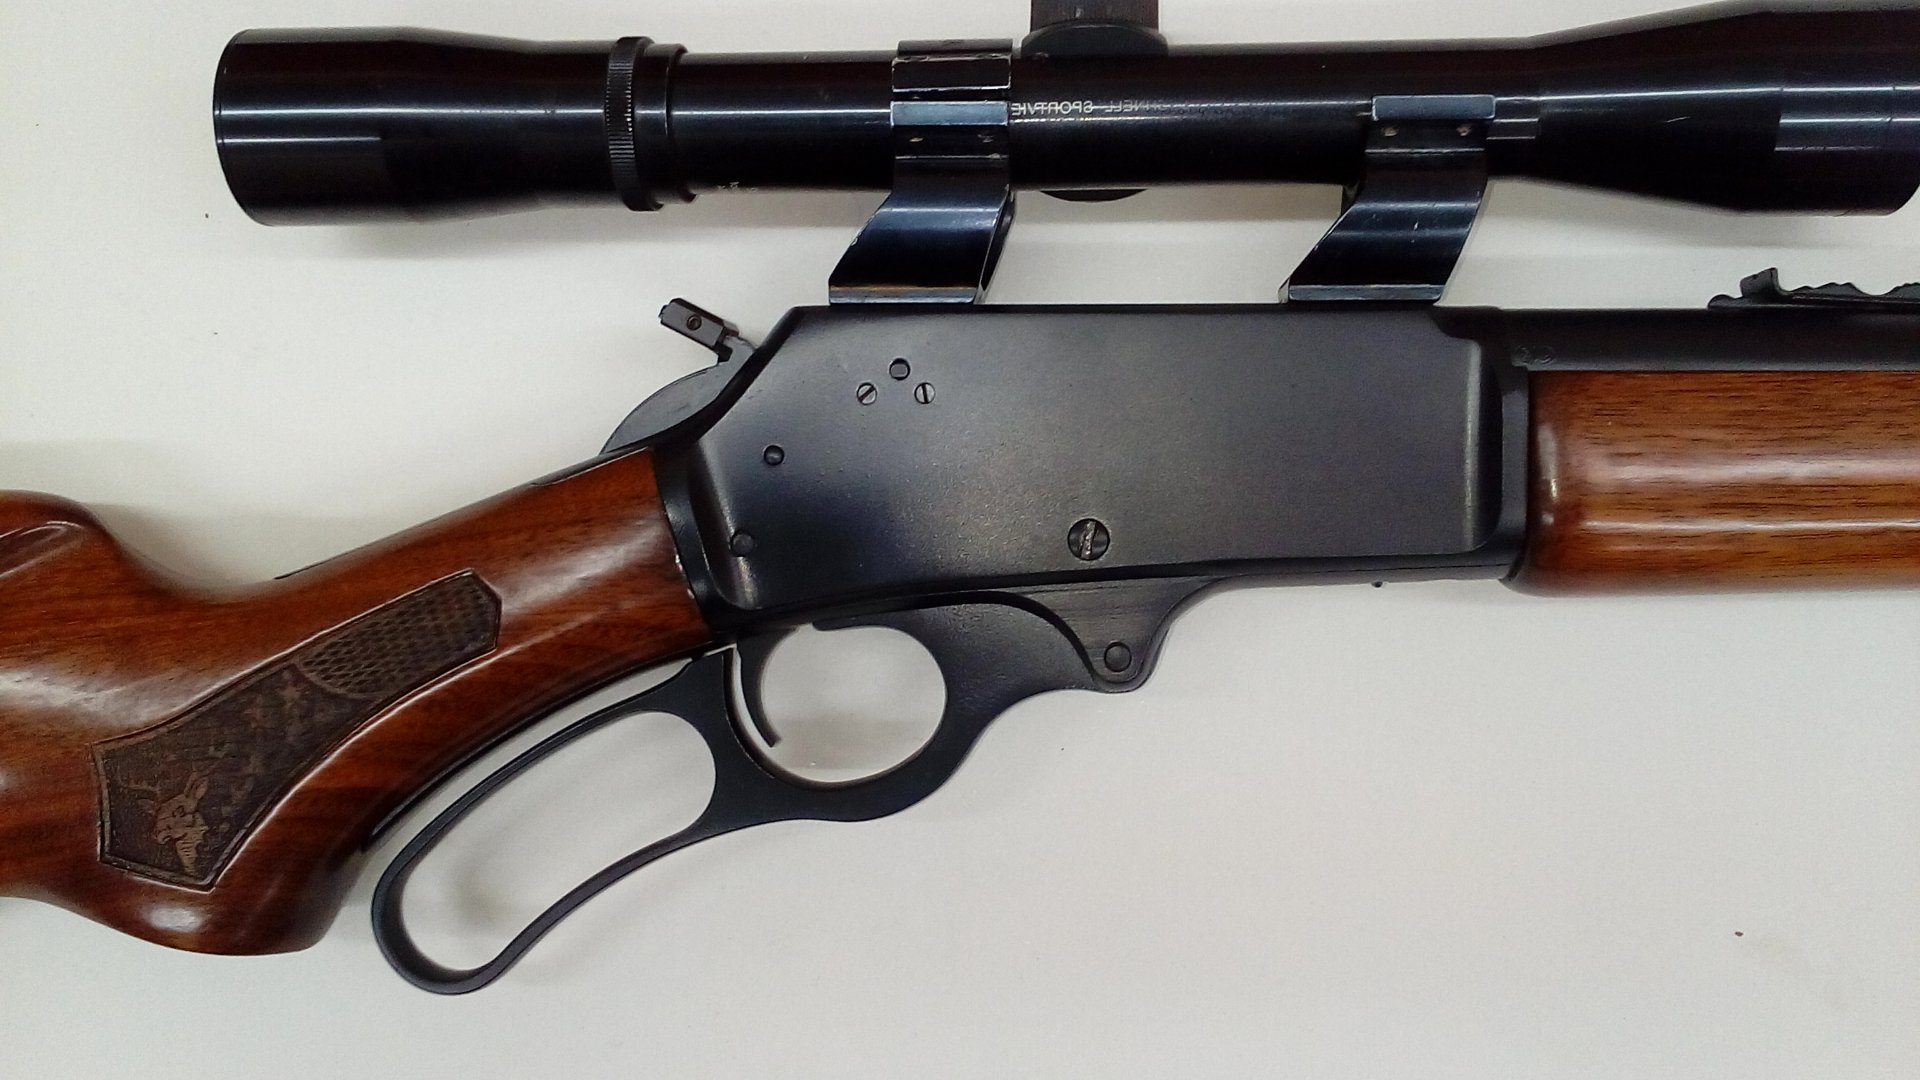 Marlin 3030 cerakoted in graphite black, this gun was also in a fire.